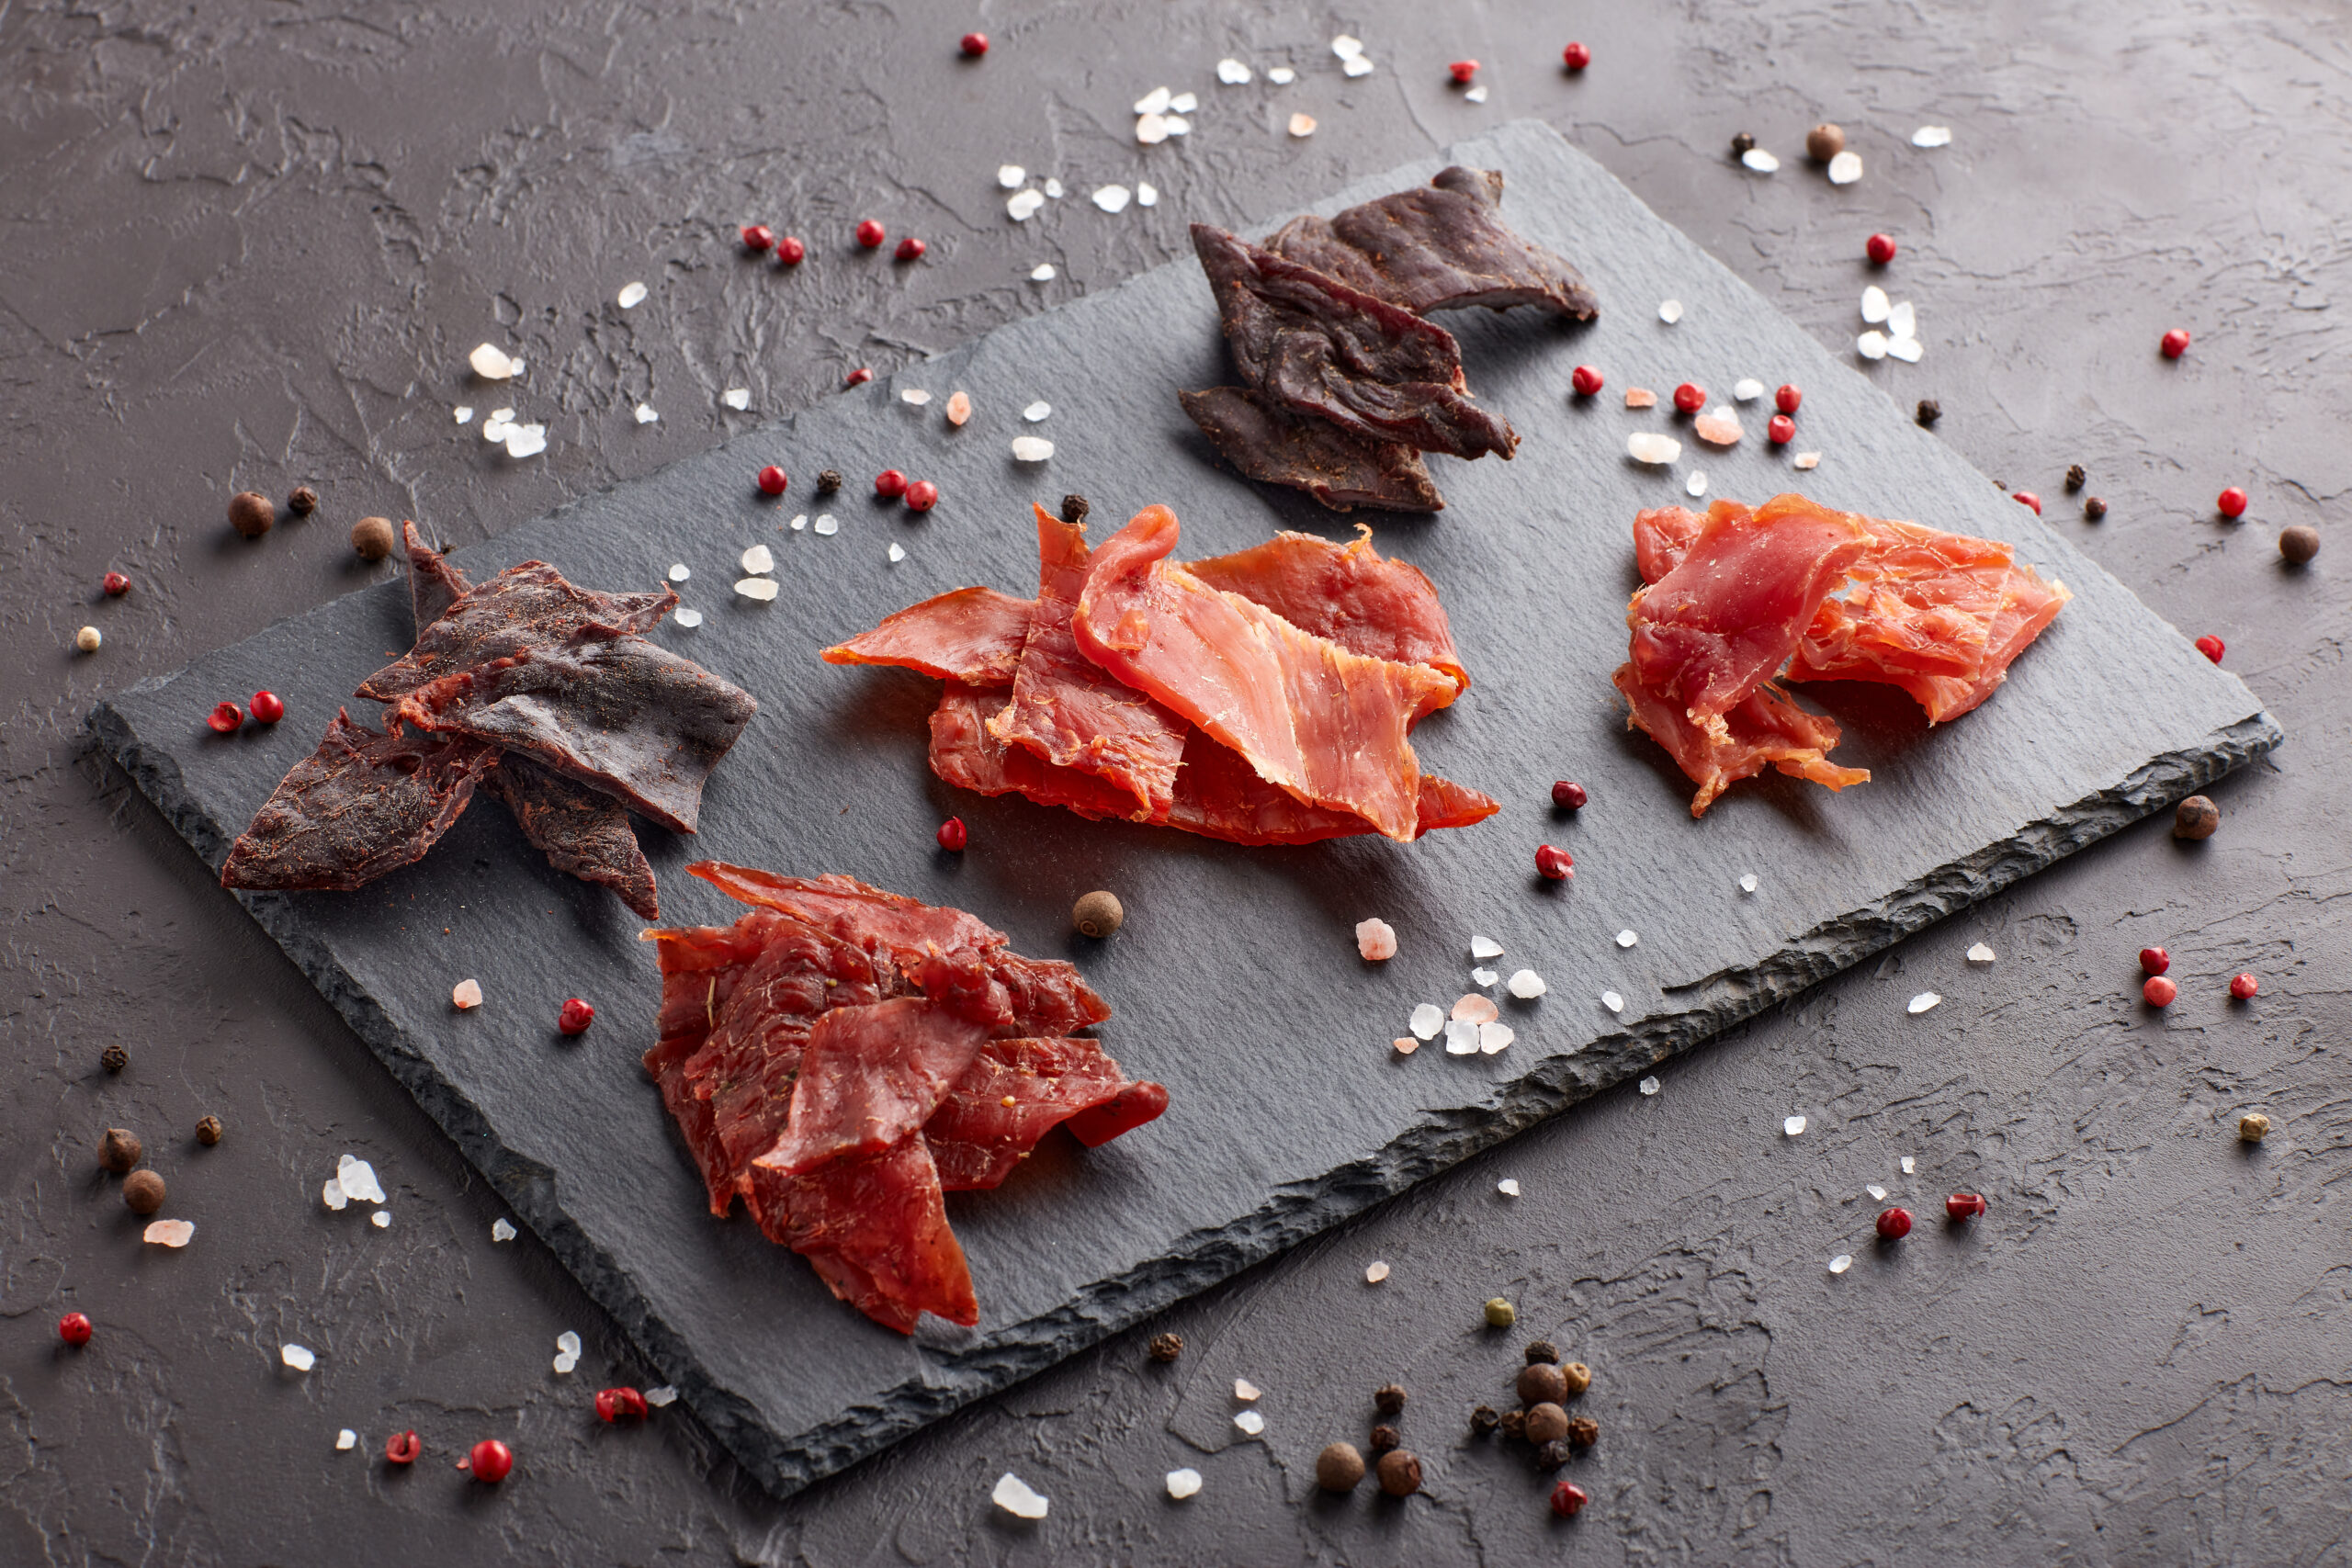 Jerky.,set,of,various,kind,of,dried,spiced,meat,on